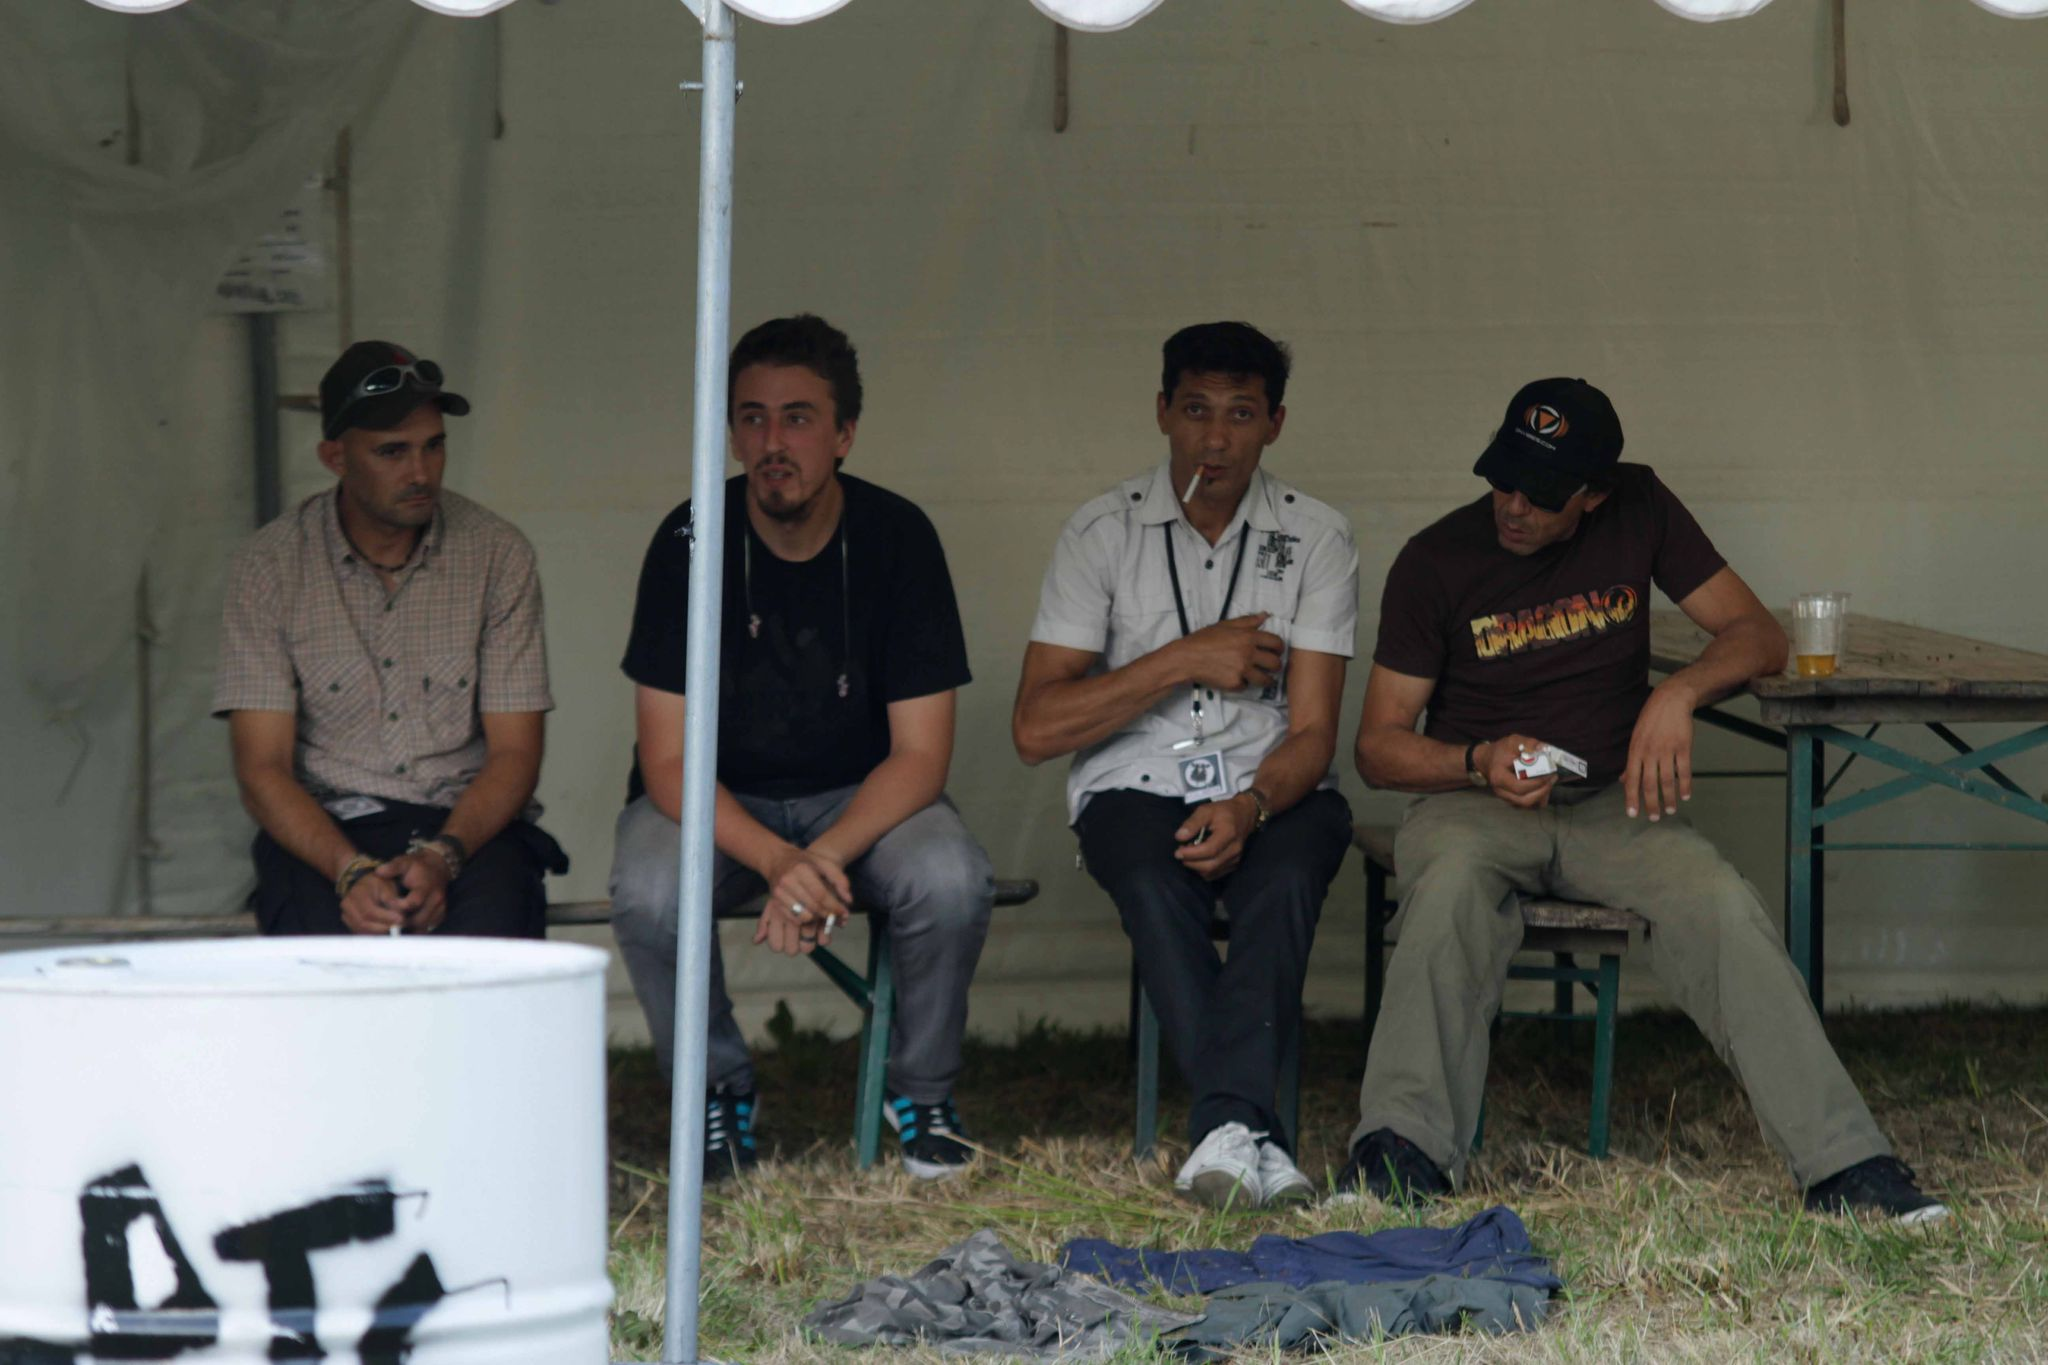 Ambiance-DTGFestival-2012-239